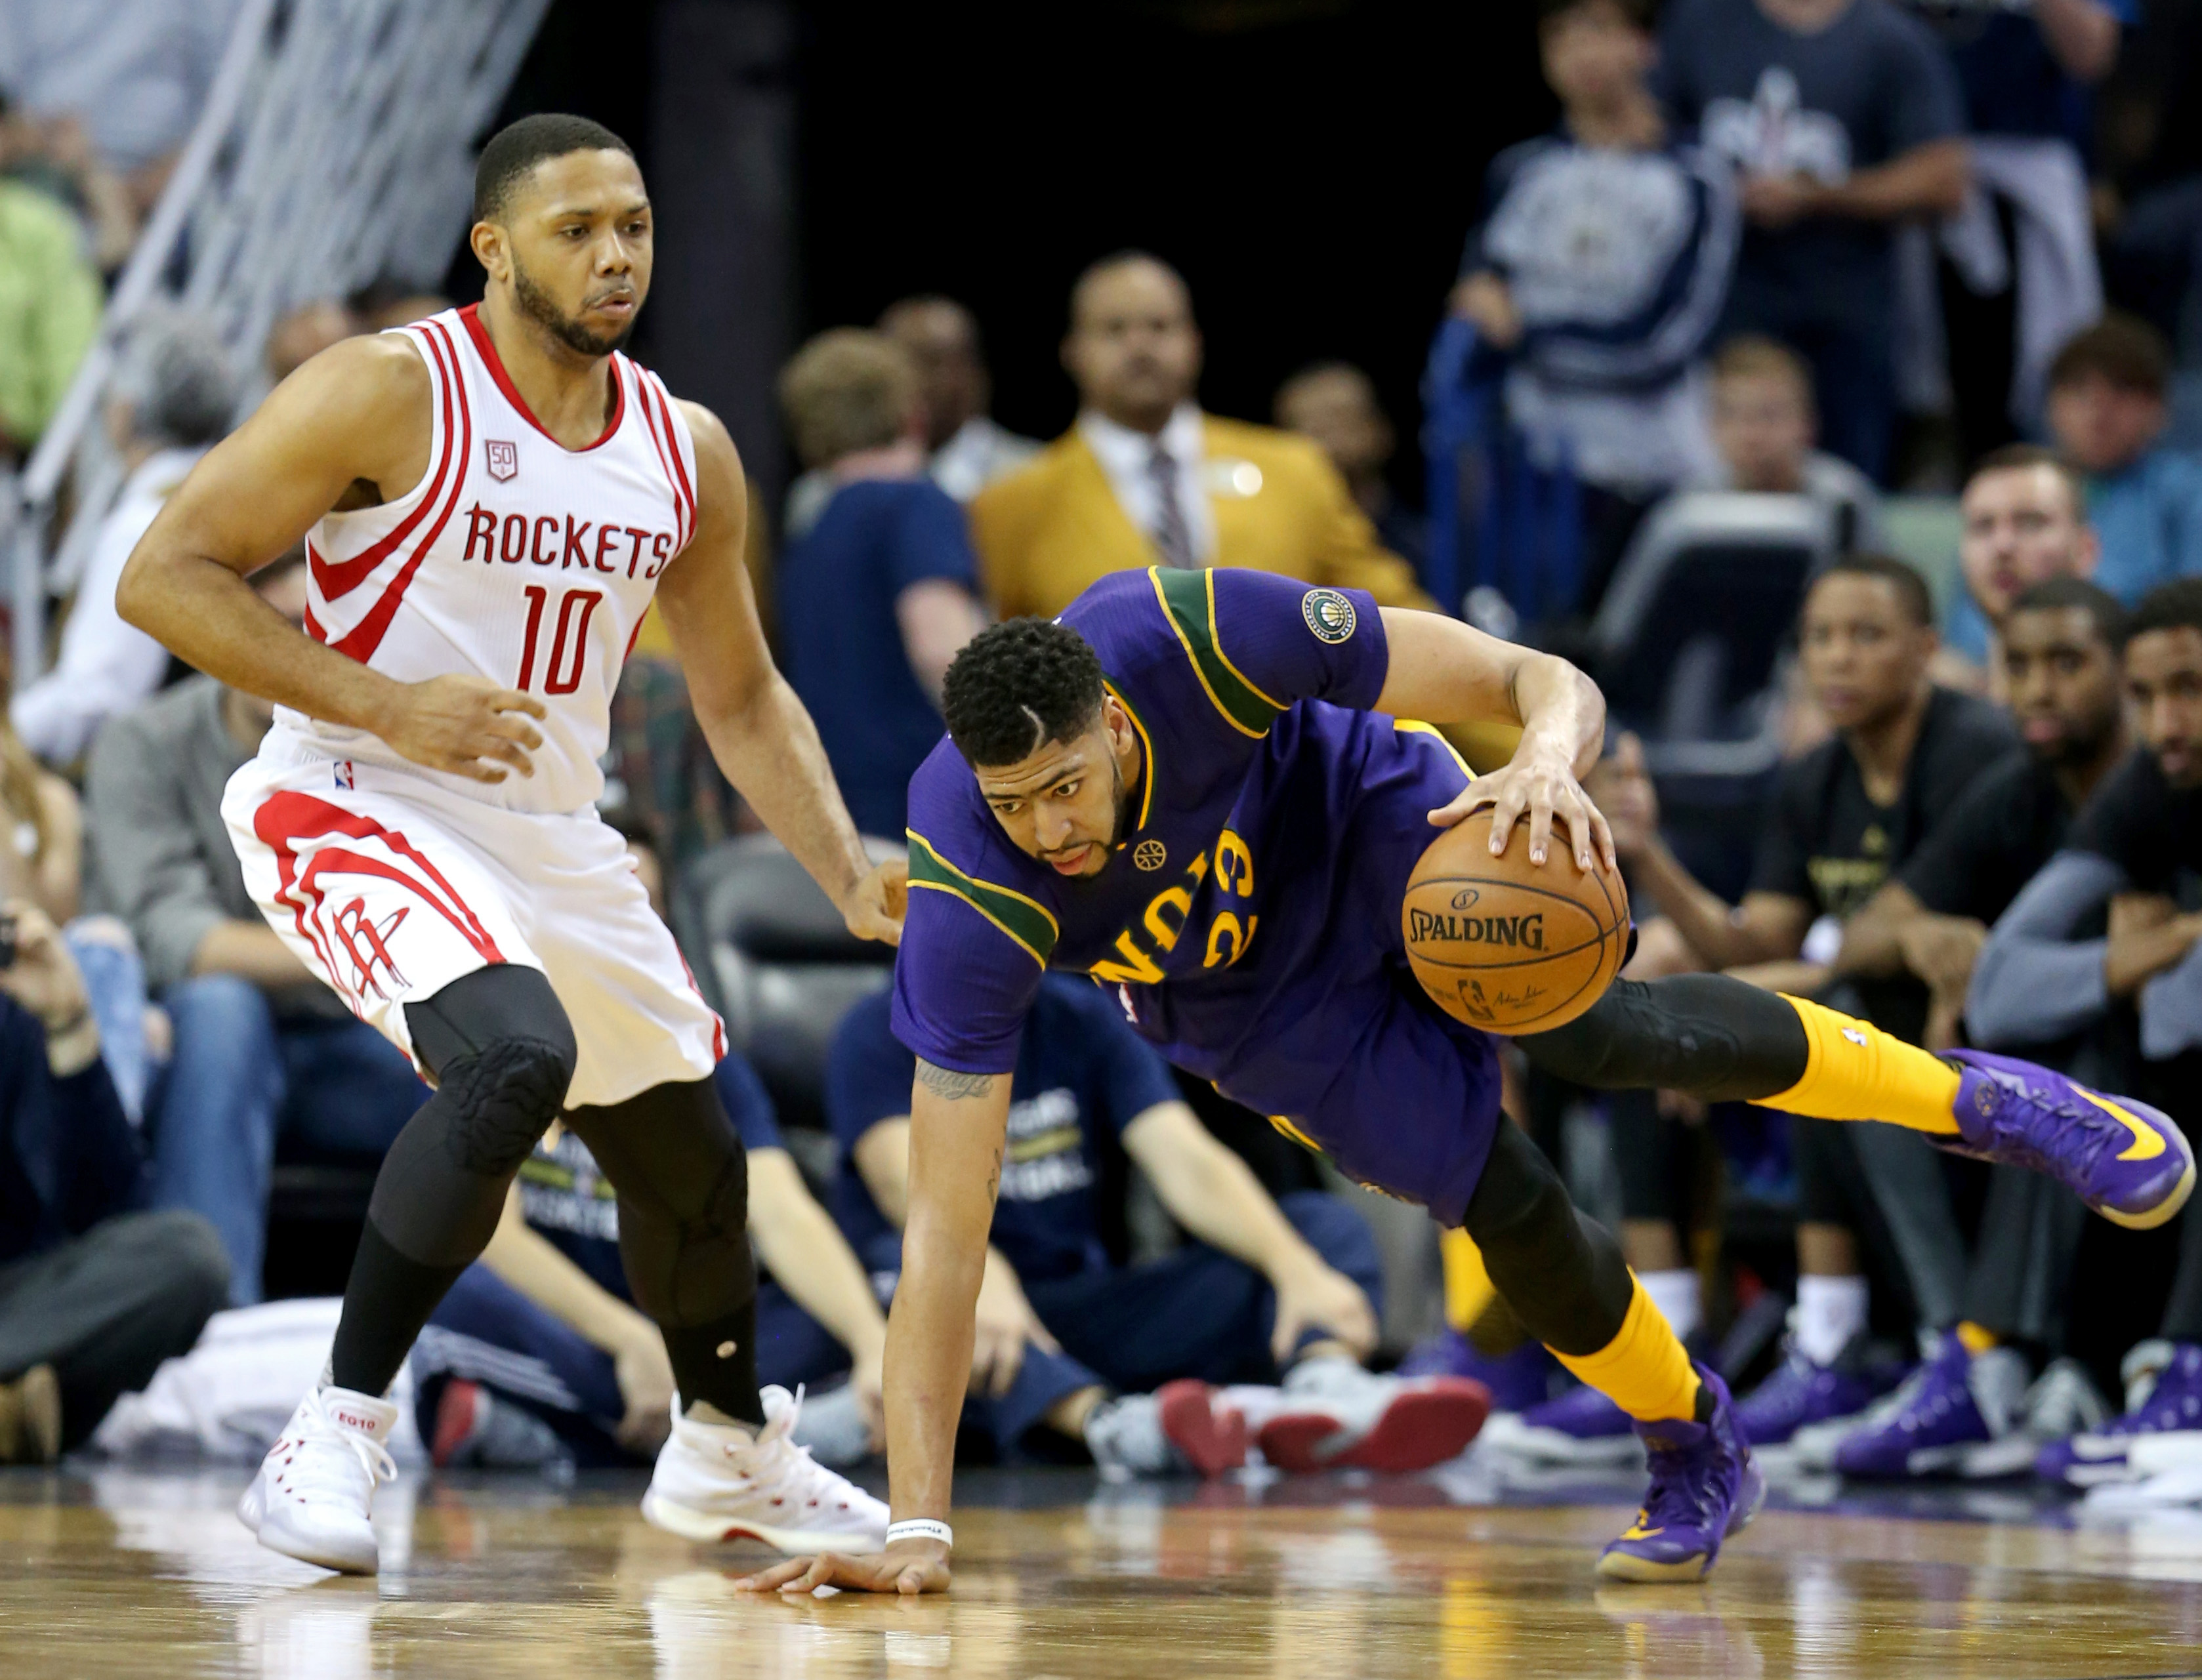 9896373-nba-houston-rockets-at-new-orleans-pelicans